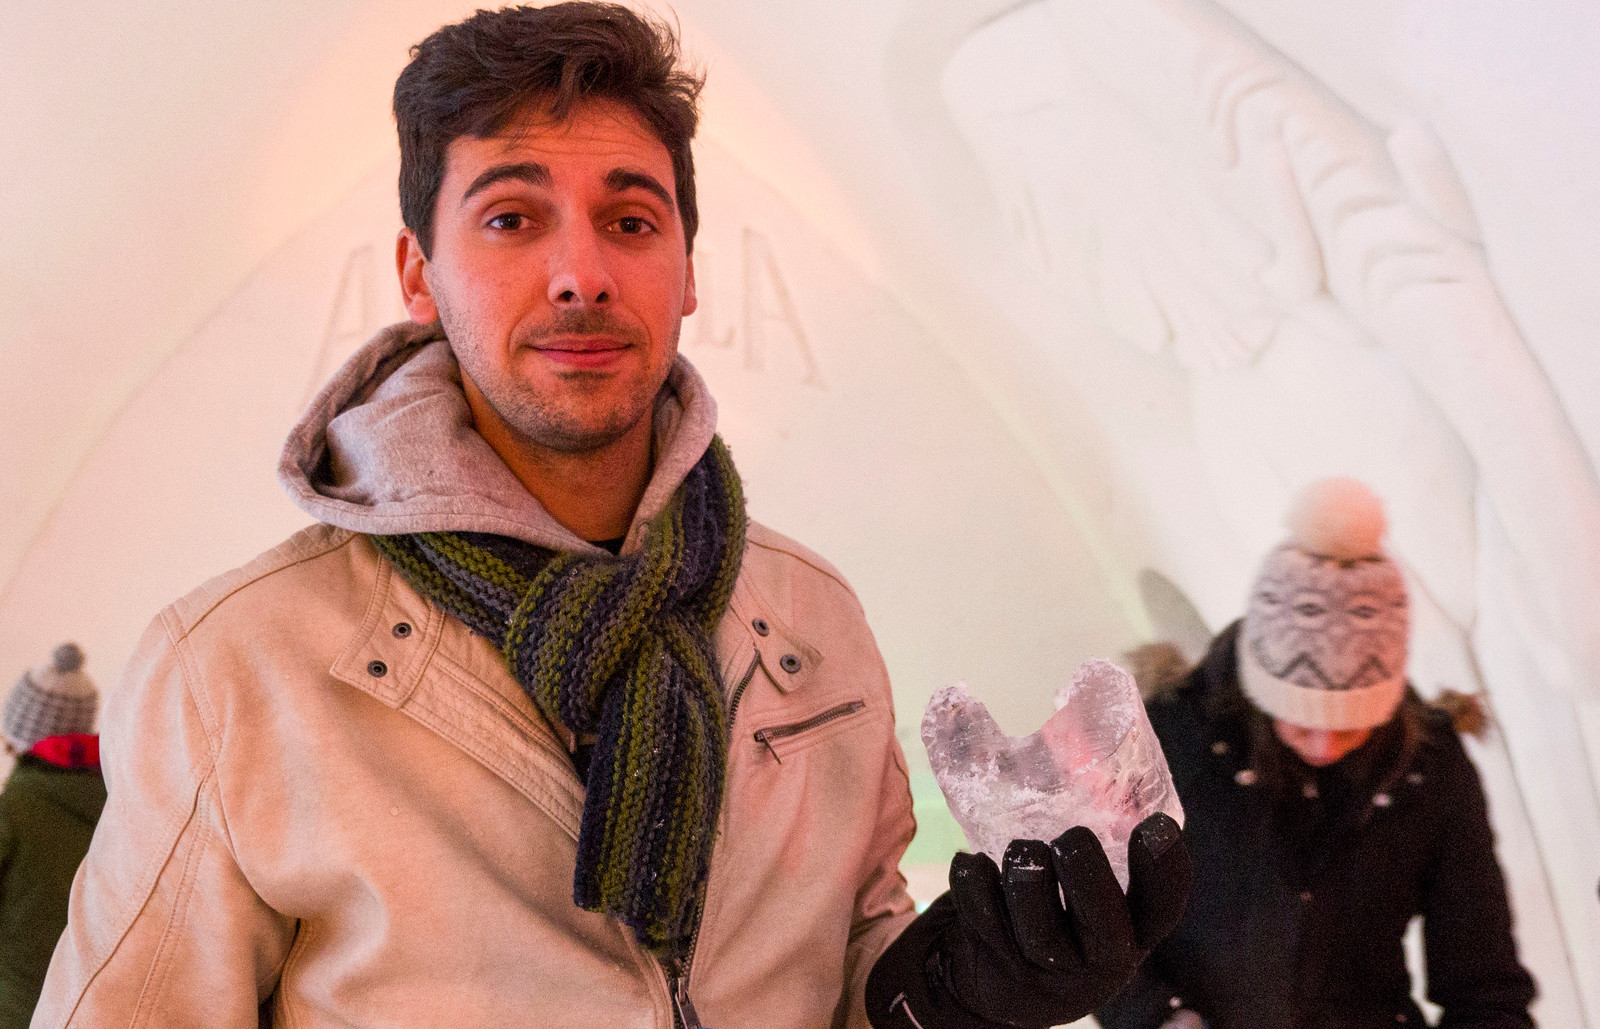 Ice Hotel Quebec: An Insider's Guide to Surviving the Night - Ice carving fail